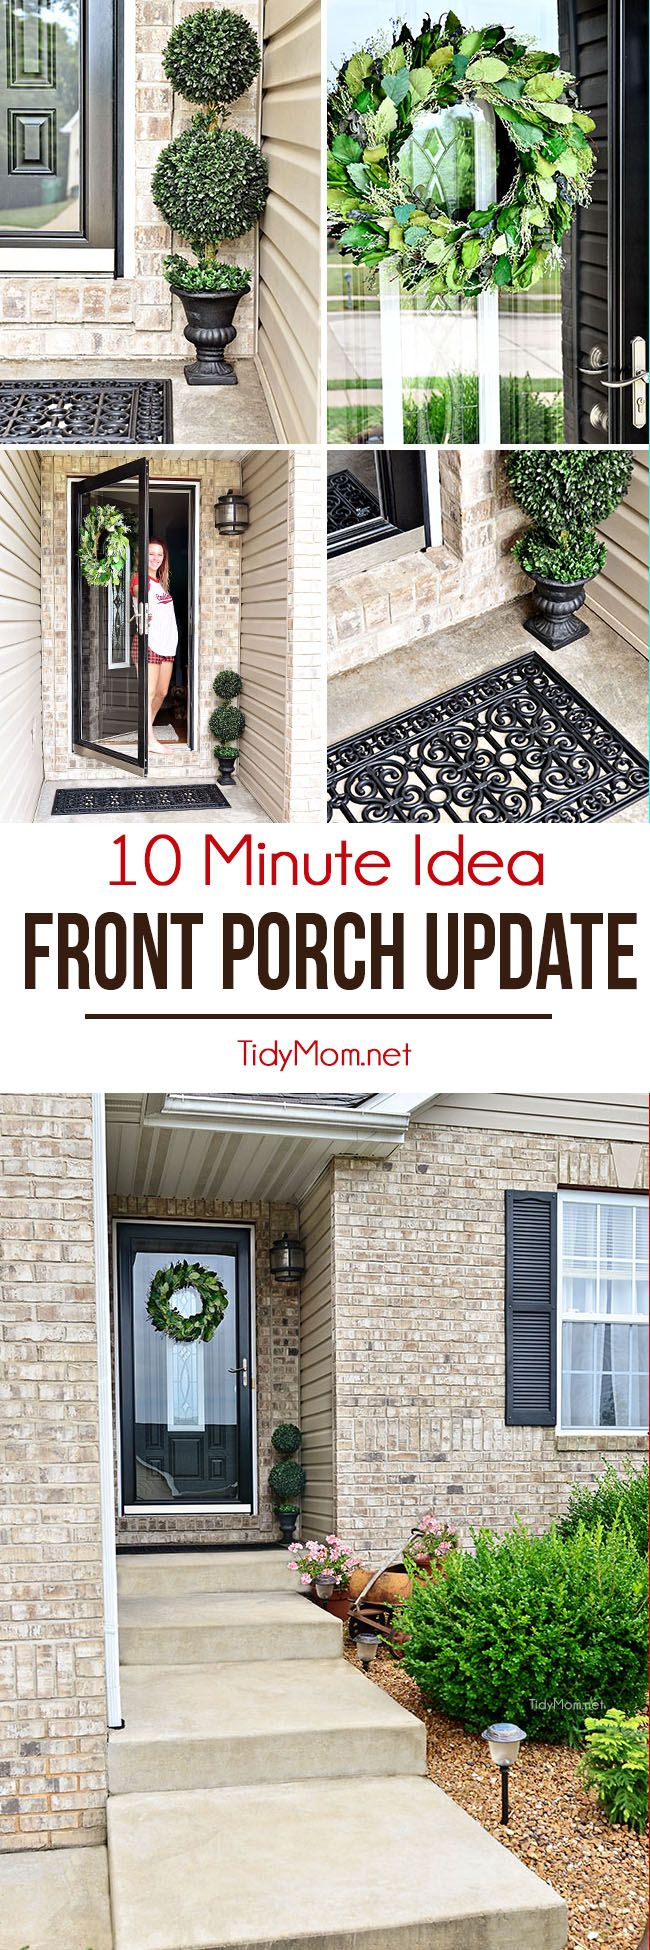 Best Small Front Porches Ideas On Pinterest Small Porch - Front porch makeover ideas